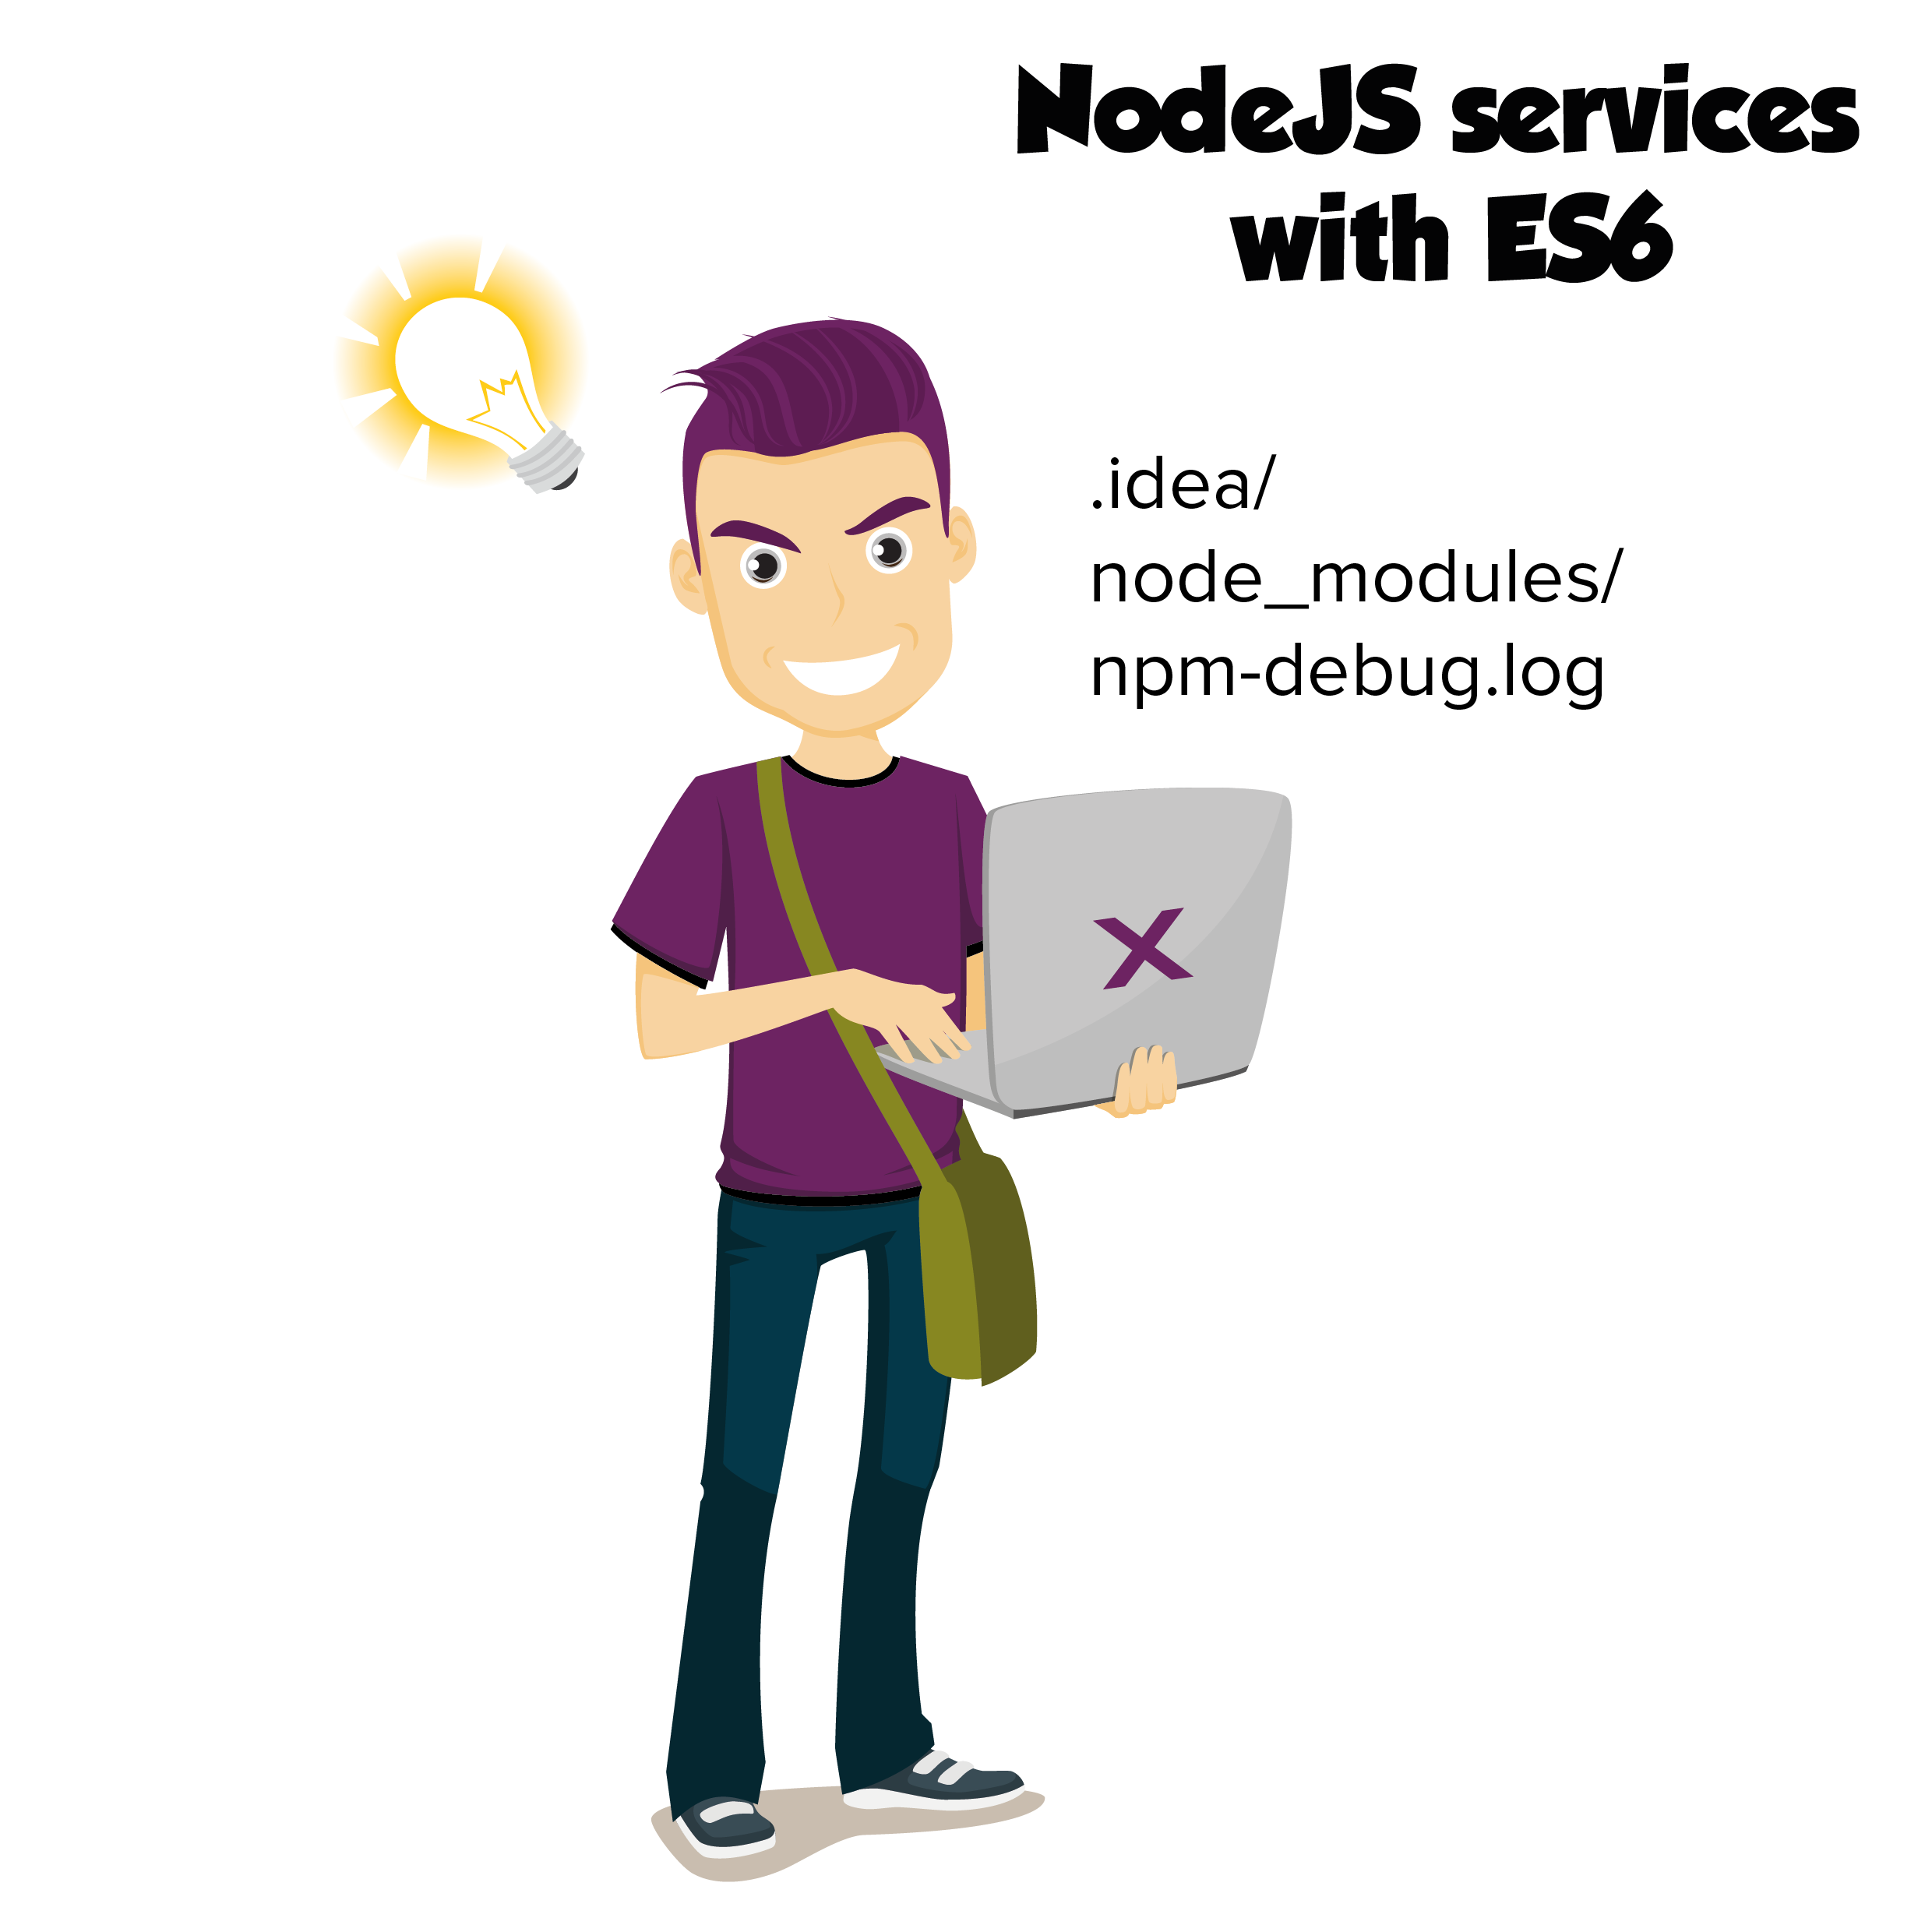 NodeJS services with ES6: Getting Started - Ramblings of a